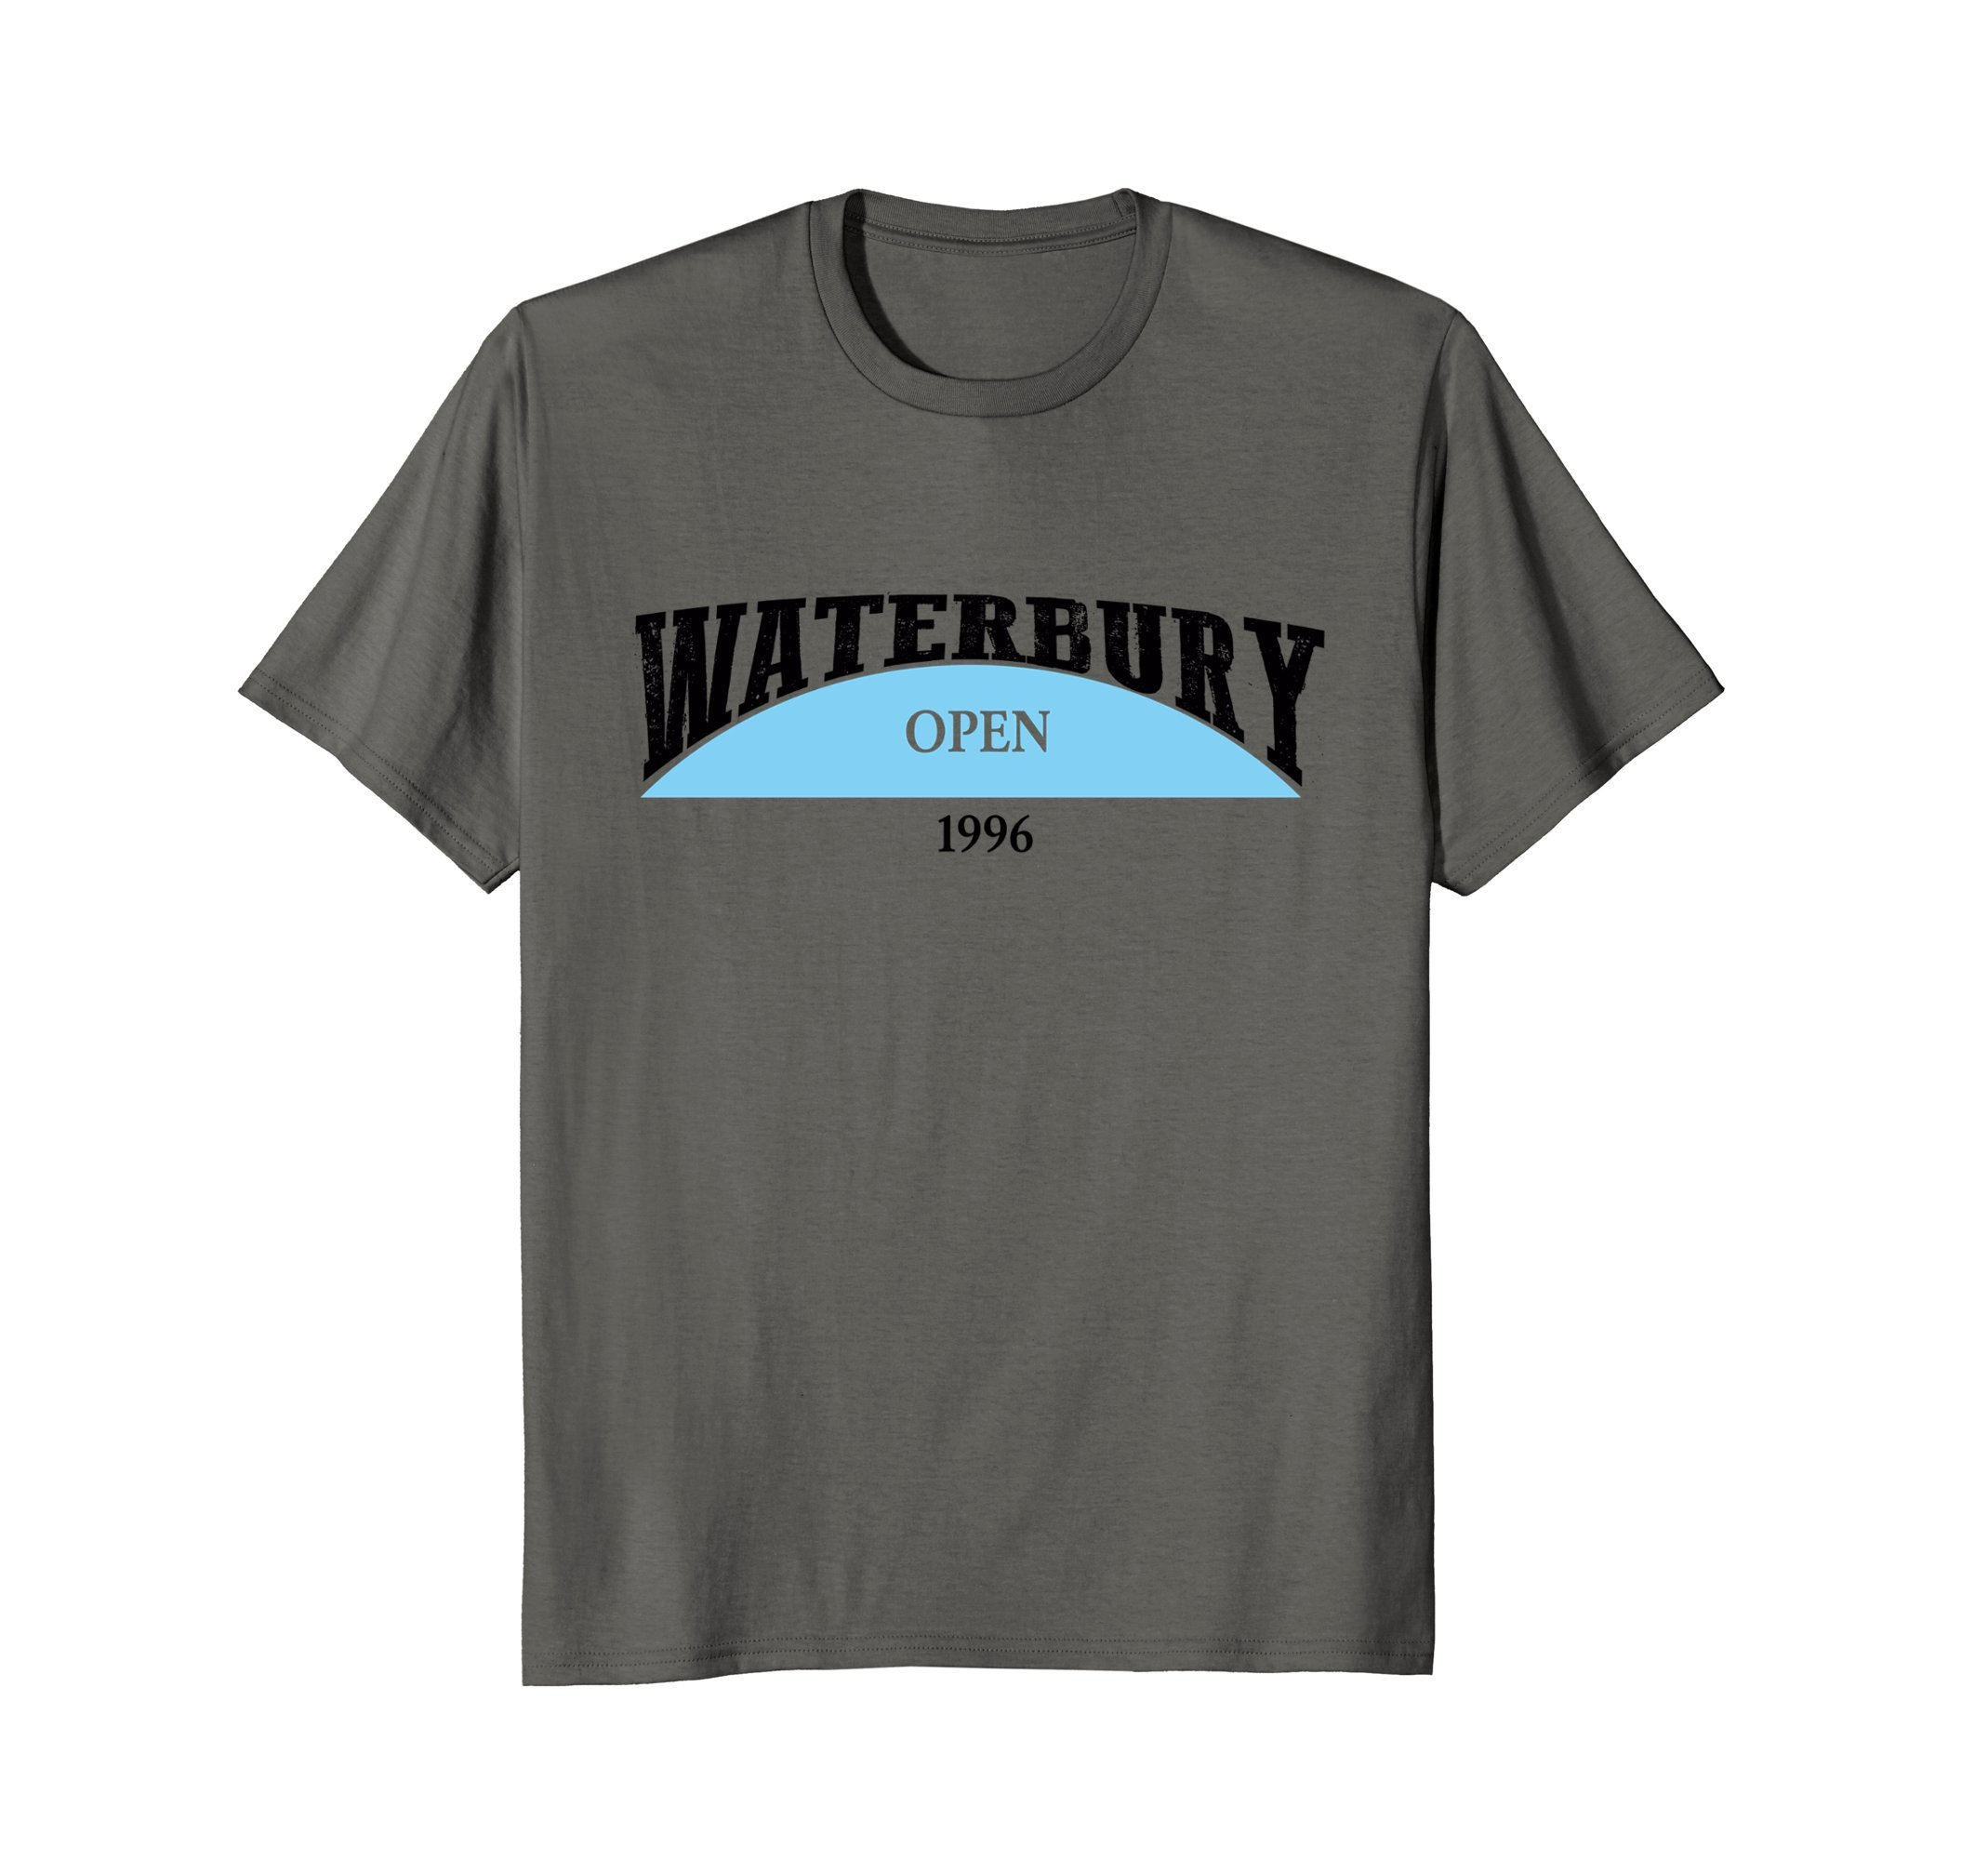 WATERBURY OPEN-T SHIRT by AAAA